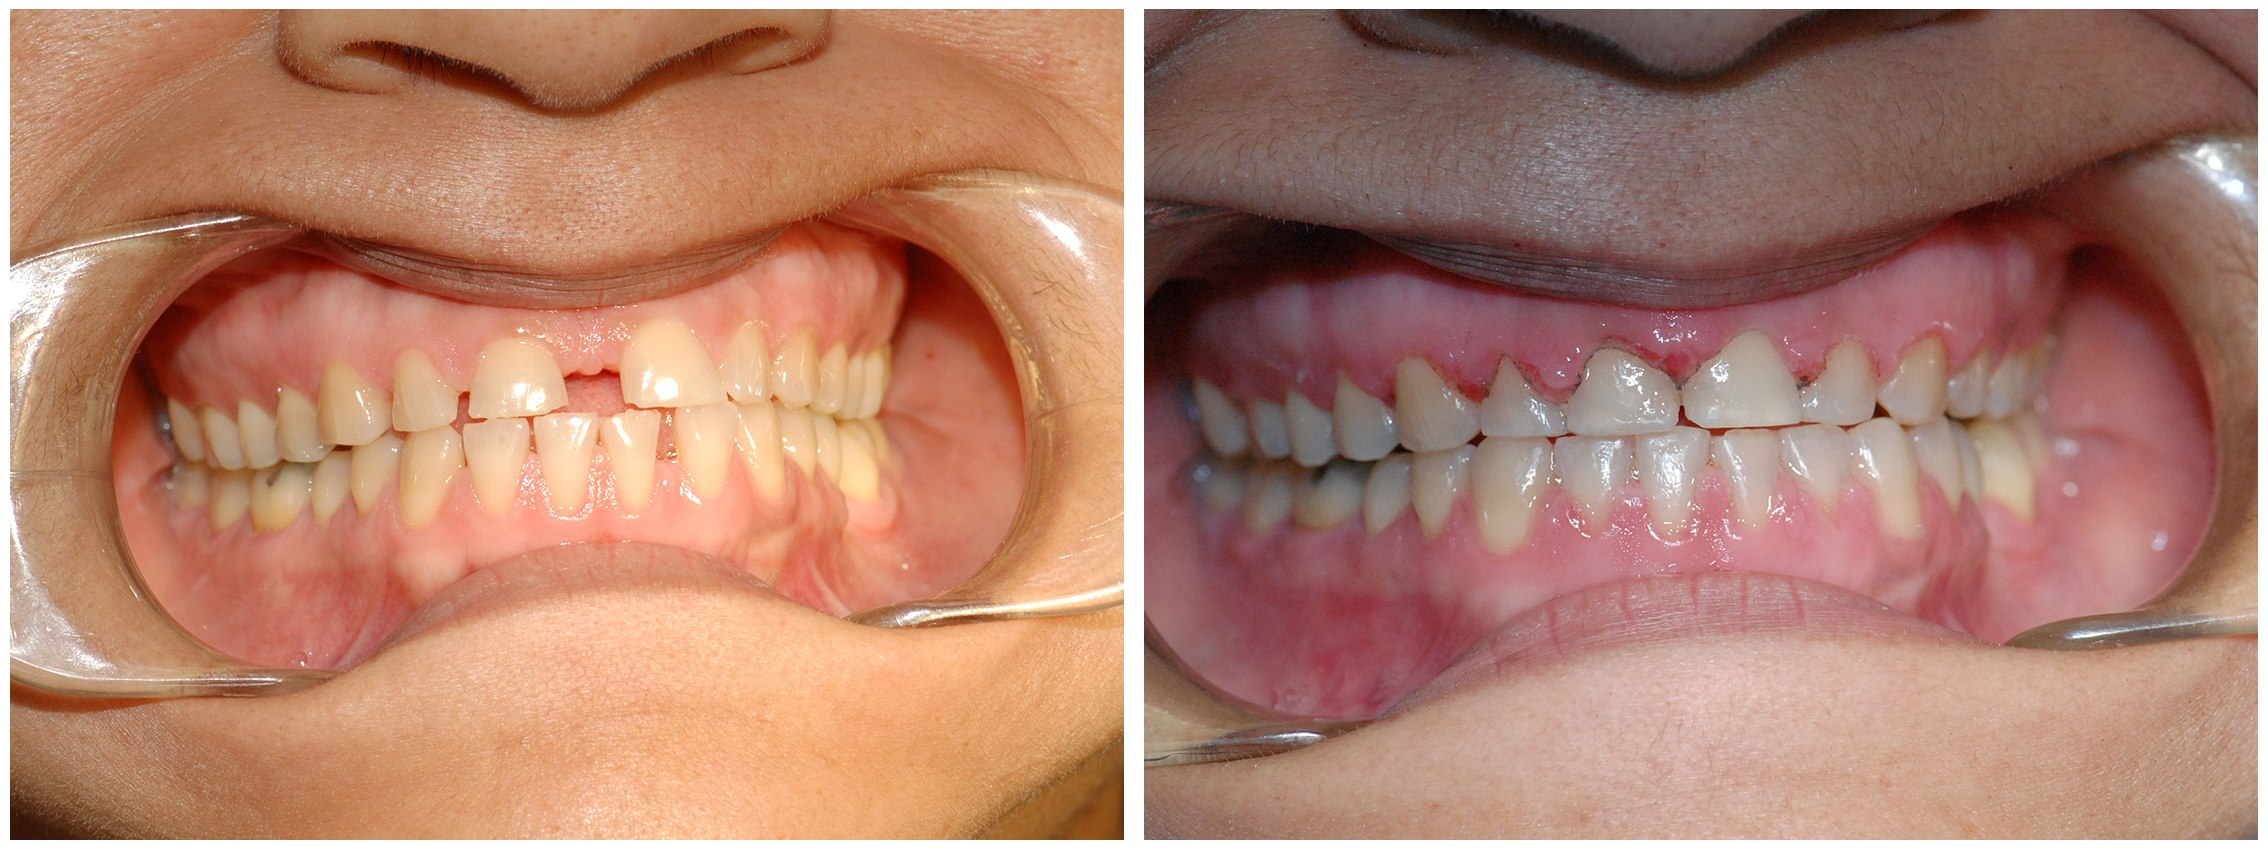 Orthodontic Dental Braces Before & After